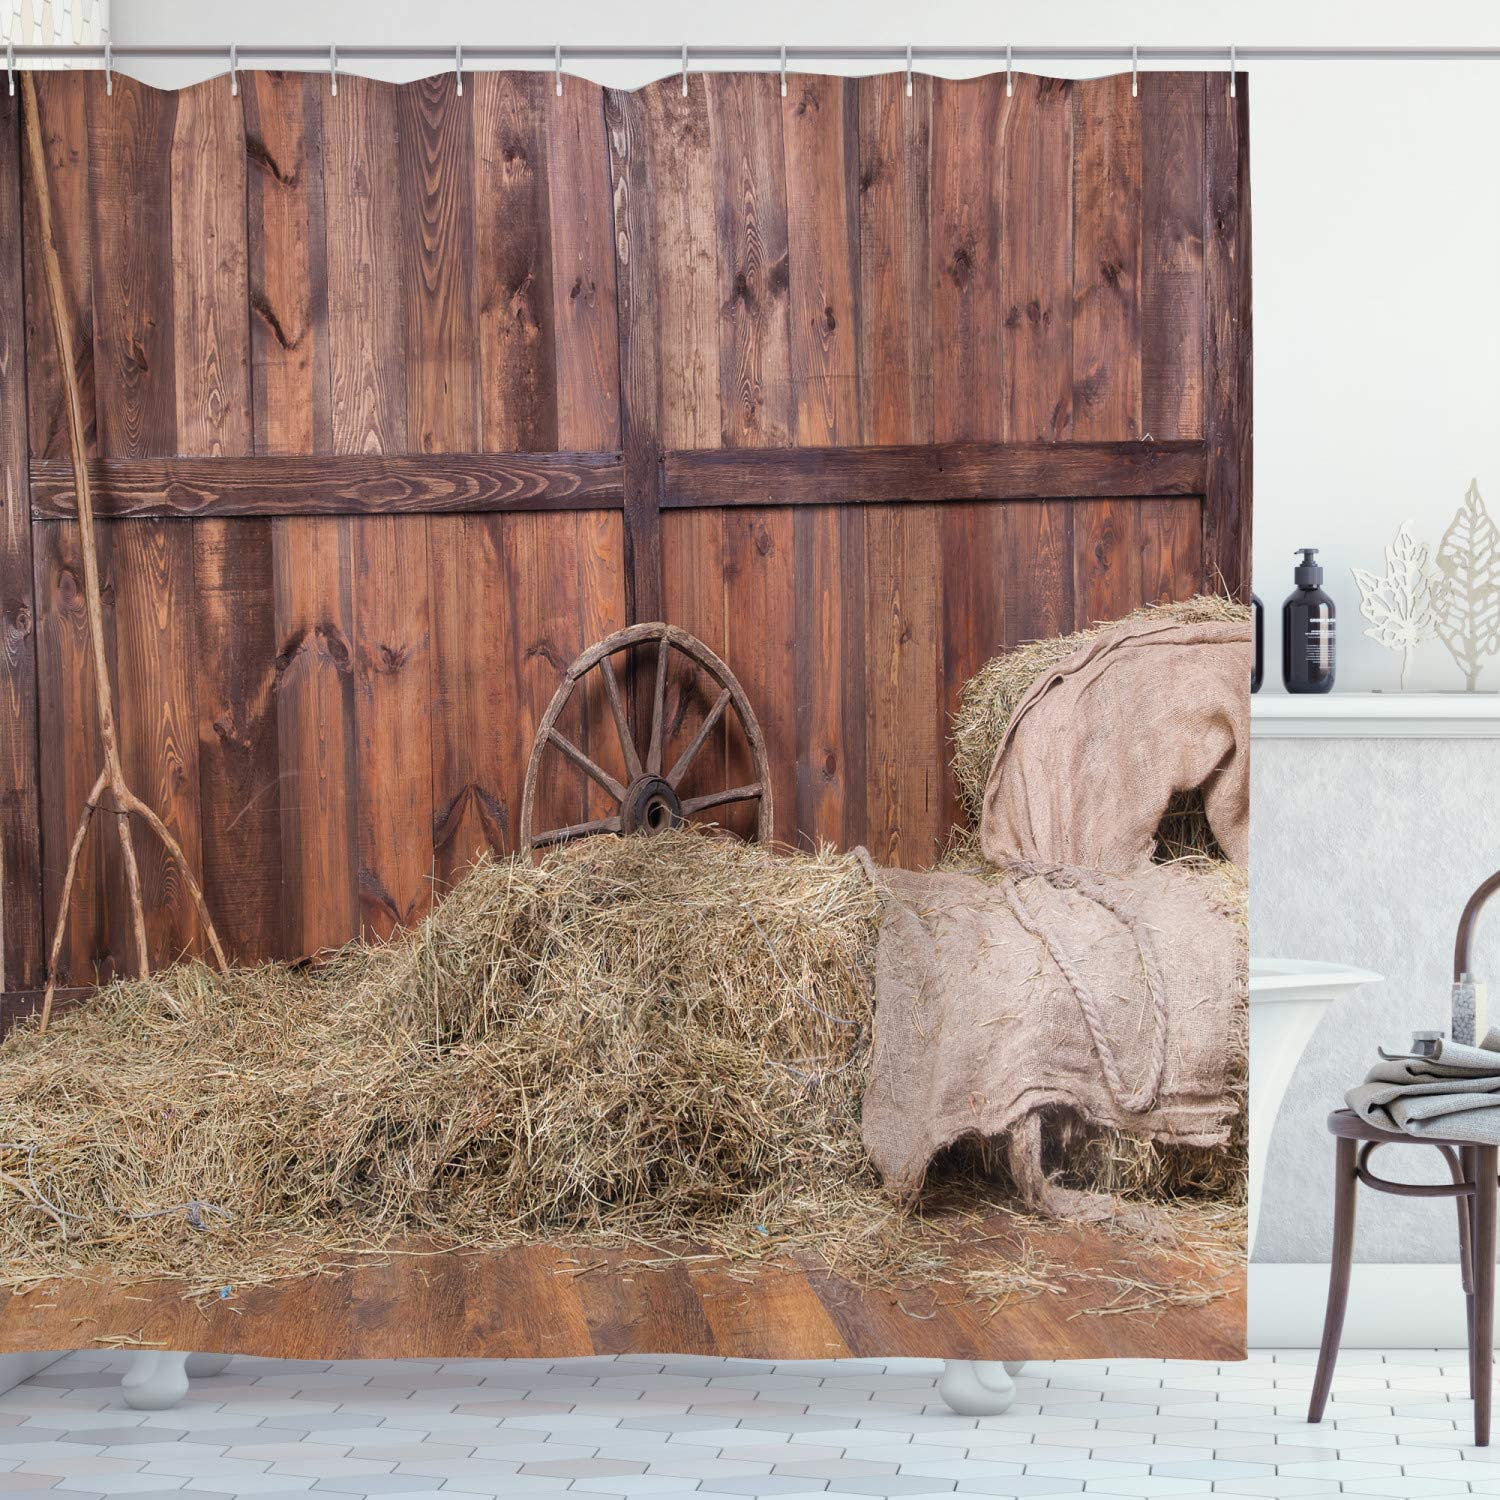 Ambesonne Barn Wood Wagon Wheel Shower Curtain, Rural Old Horse Stable Barn Interior Hay and Wood Planks Image Print, Cloth Fabric Bathroom Decor Set with Hooks, 70